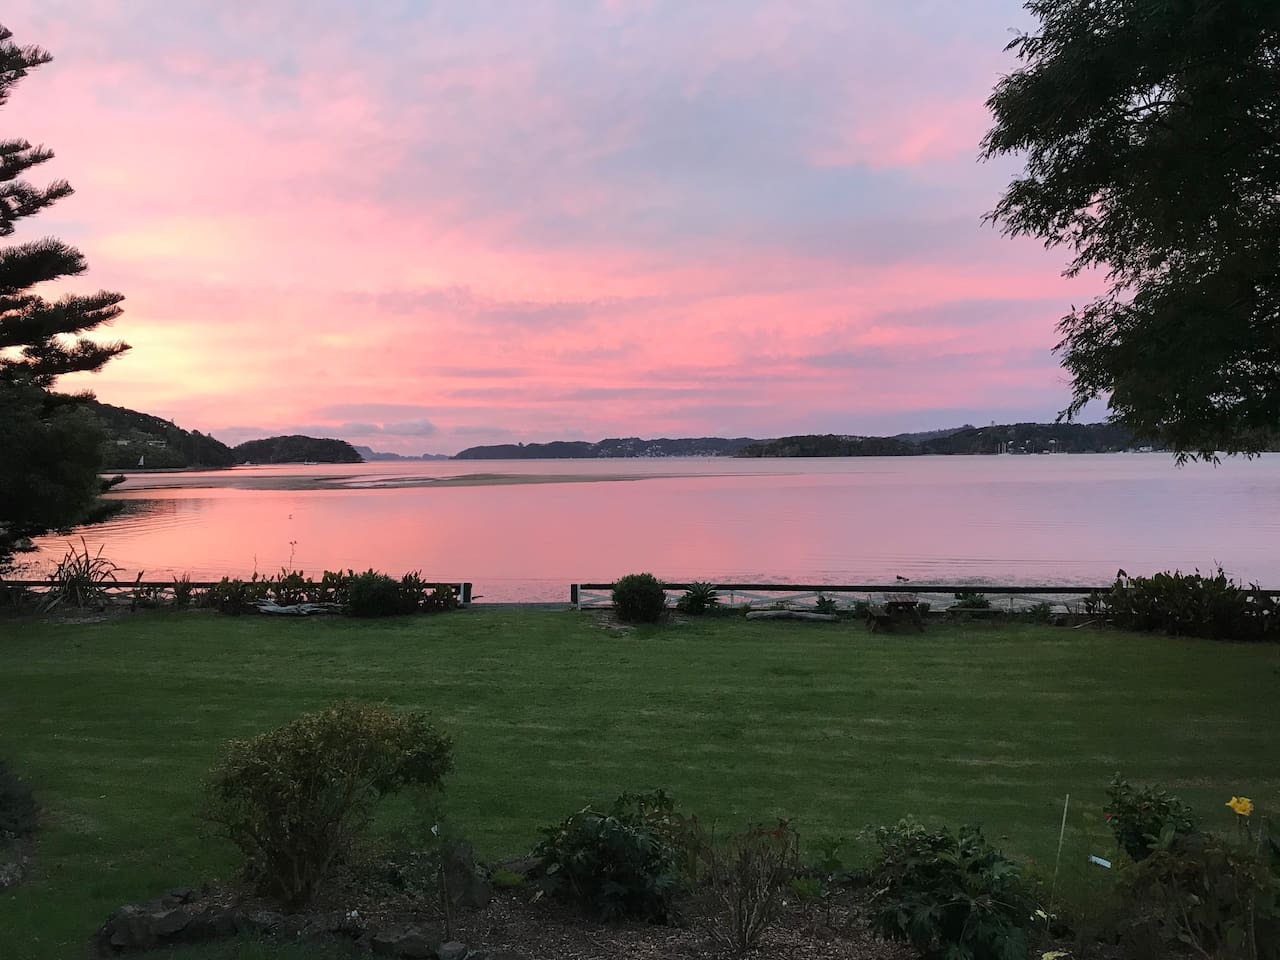 View from the front deck at sunset